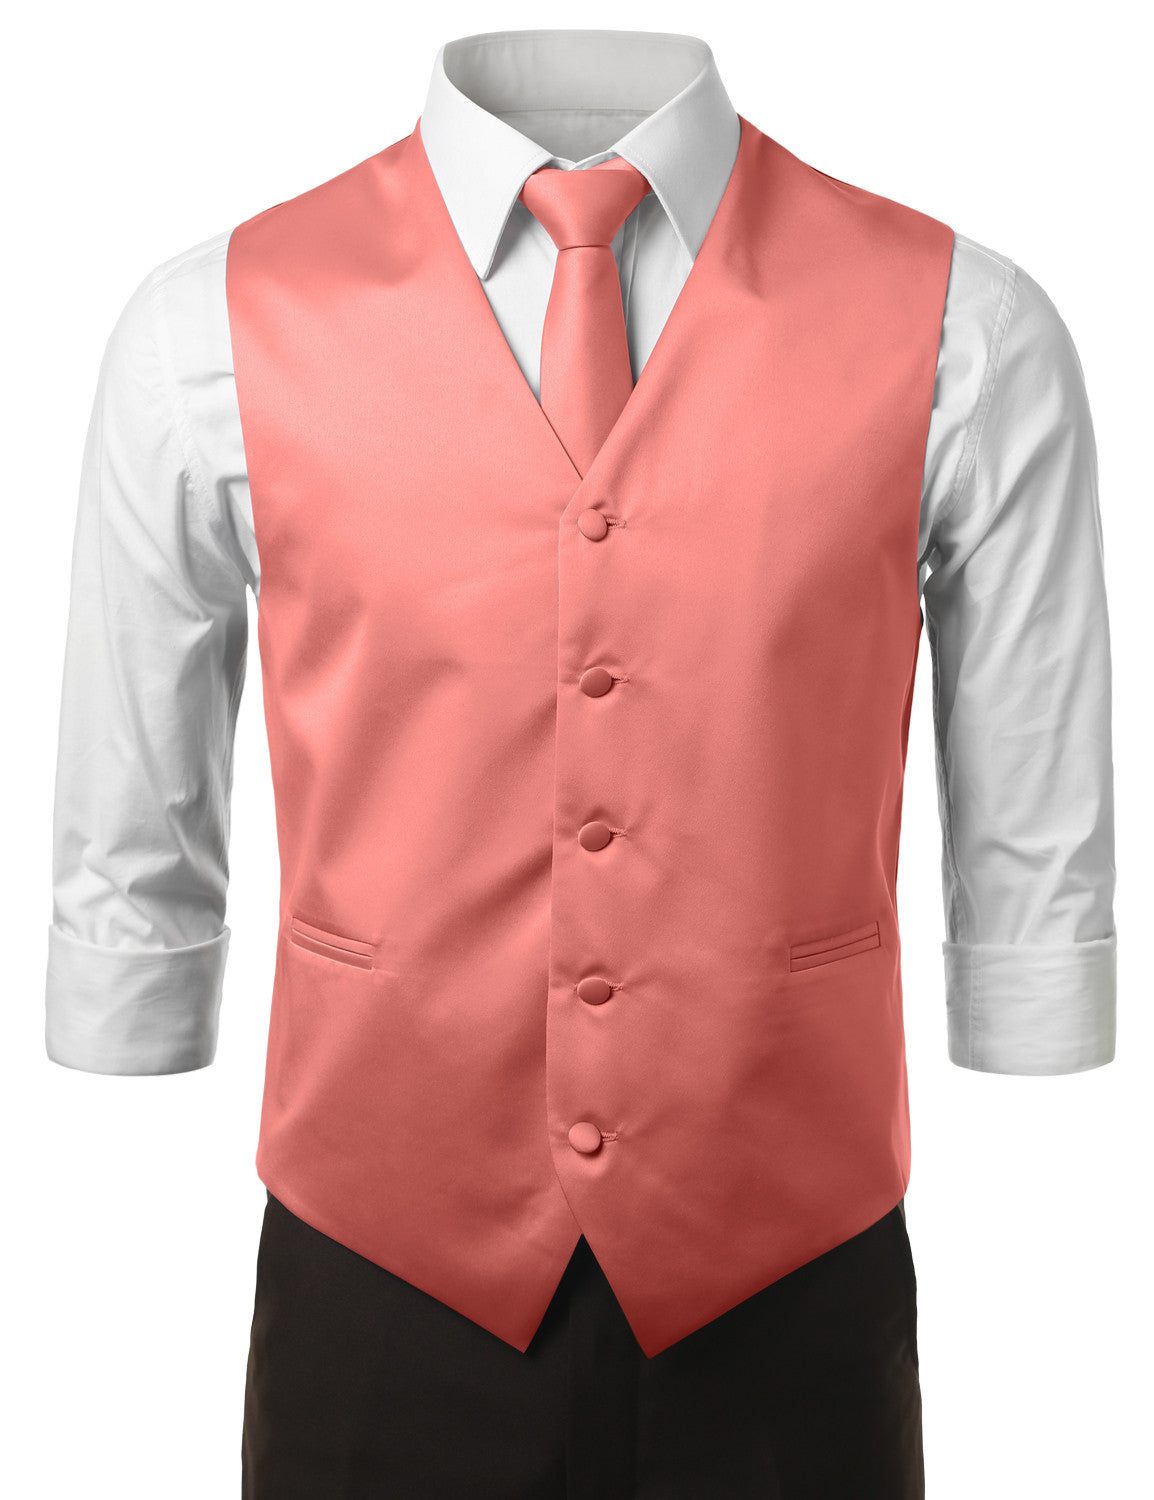 CORAL5 Formal Tuxedo 3 Piece Vest Set (Vest, Necktie, Pocket Square)- MONDAYSUIT